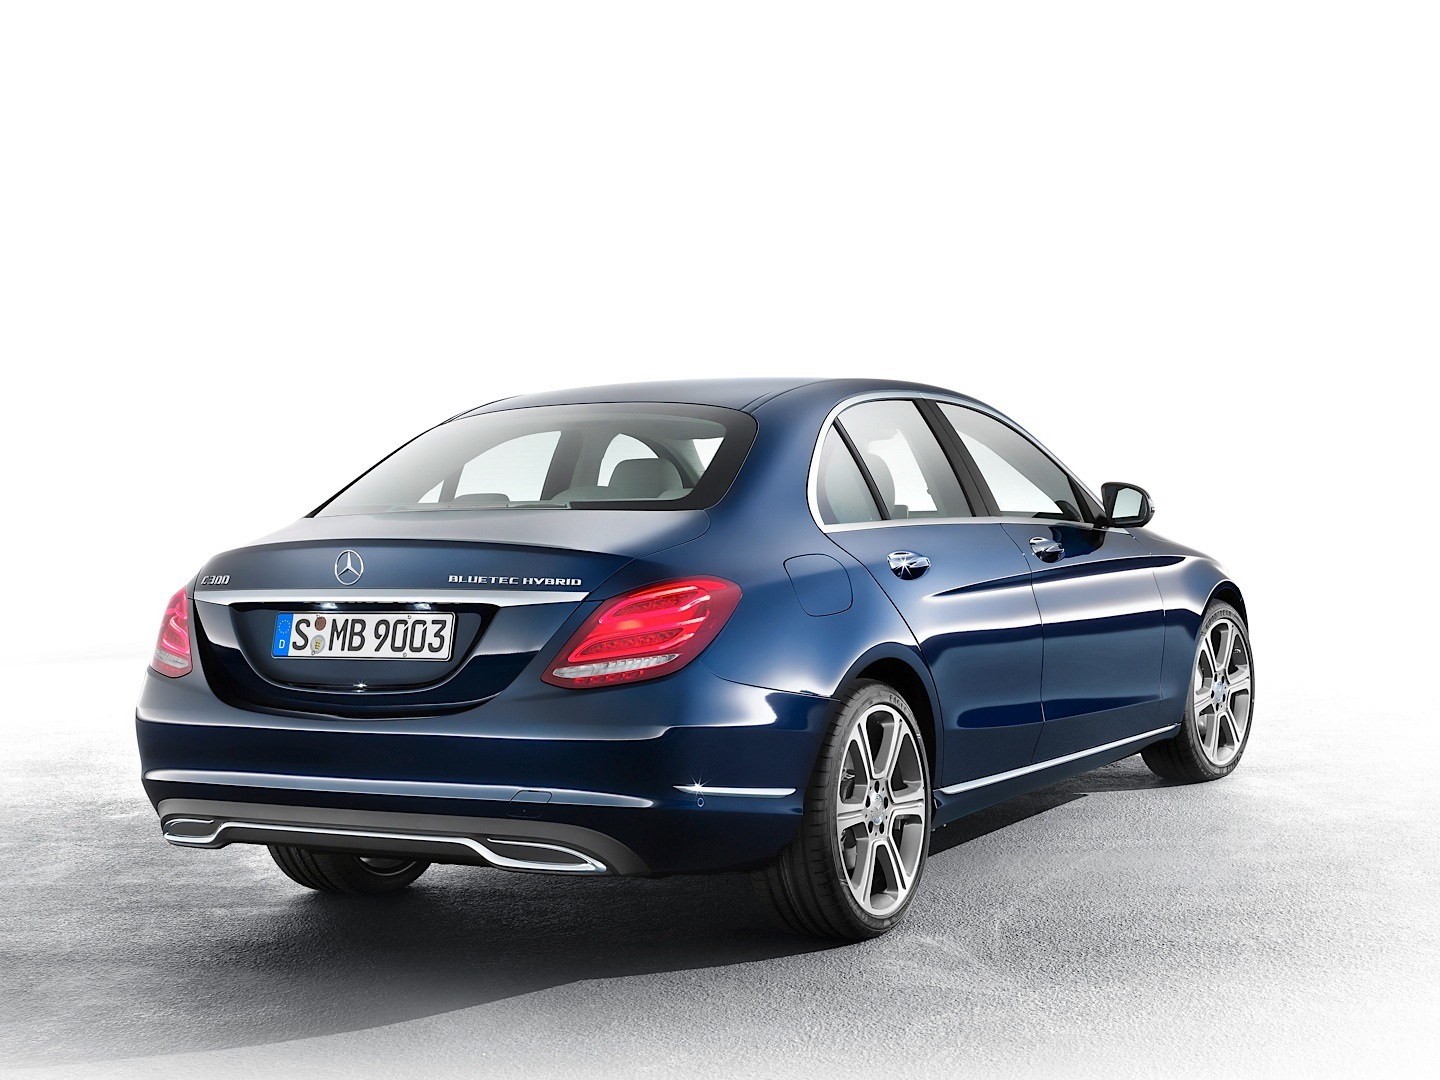 2015 mercedes benz c class w205 gets priced in the uk for Mercedes benz class 2015